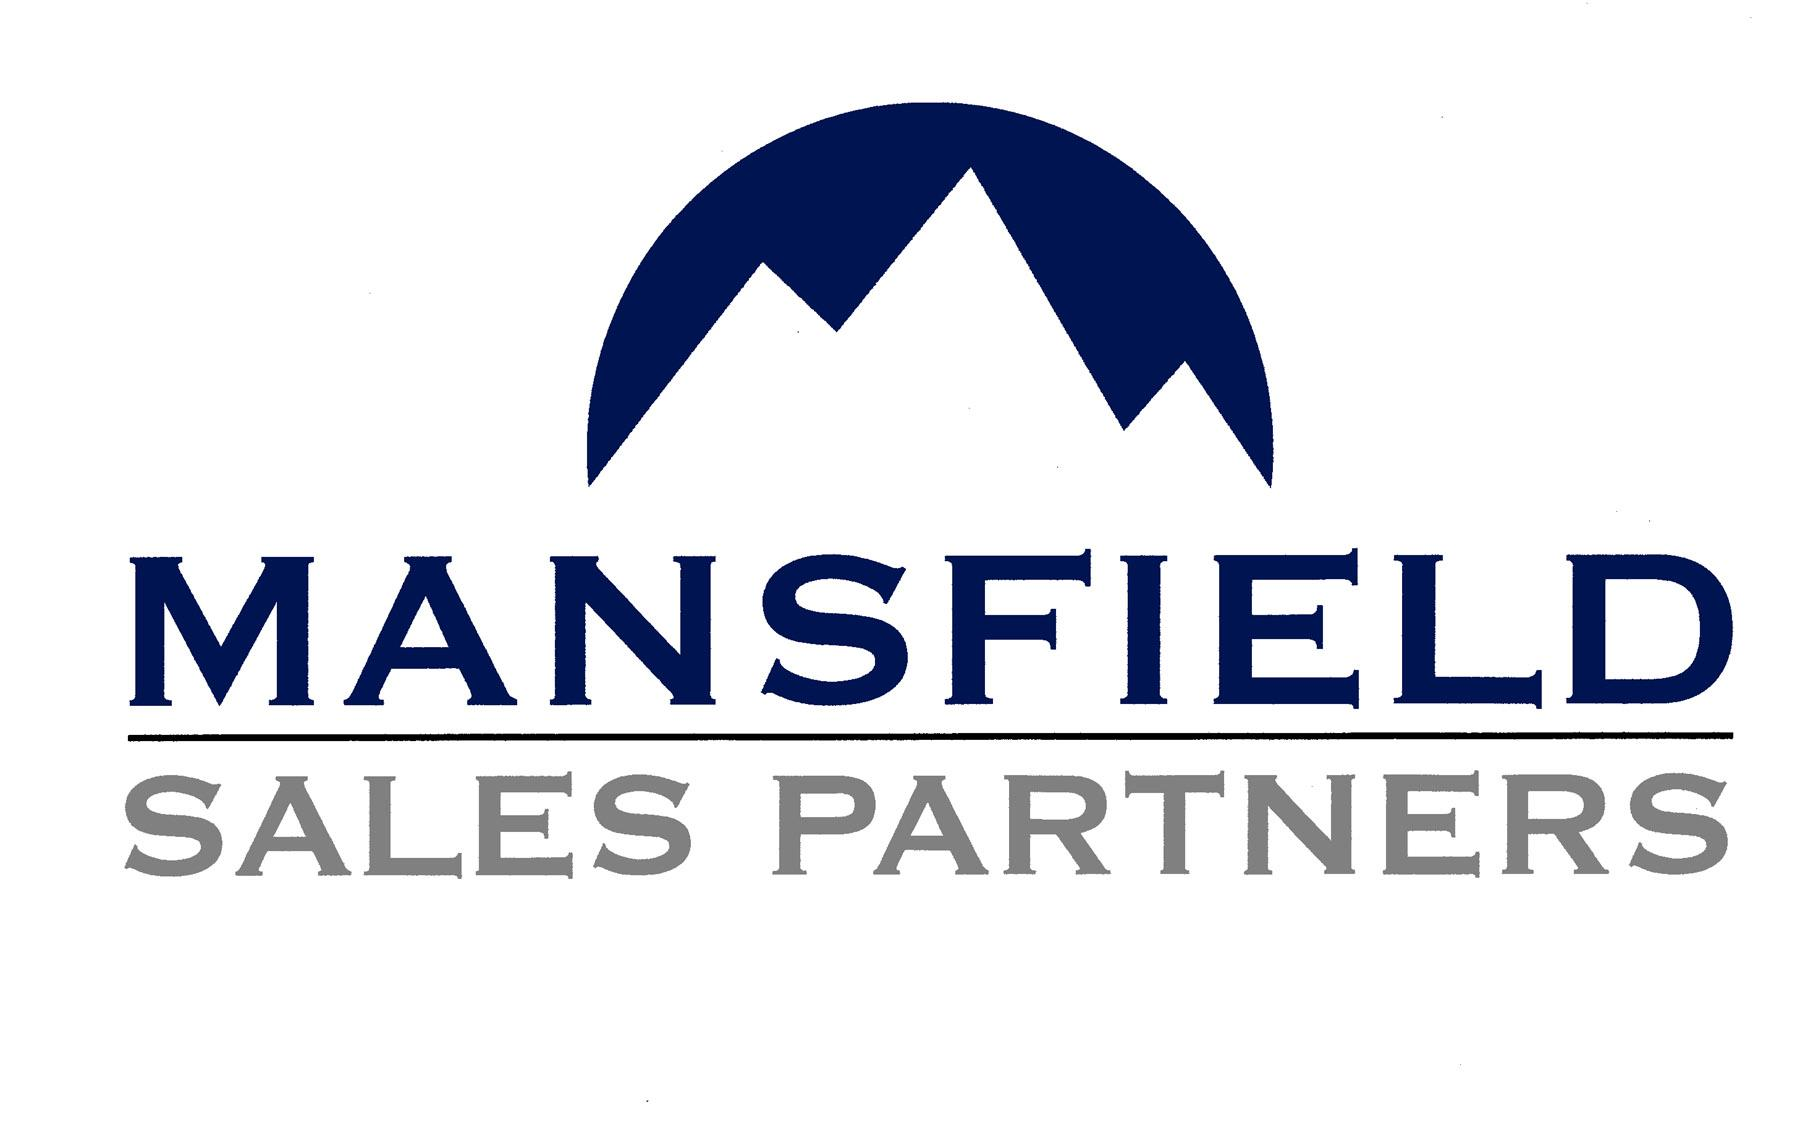 Mansfield Sales Partners Company Logo